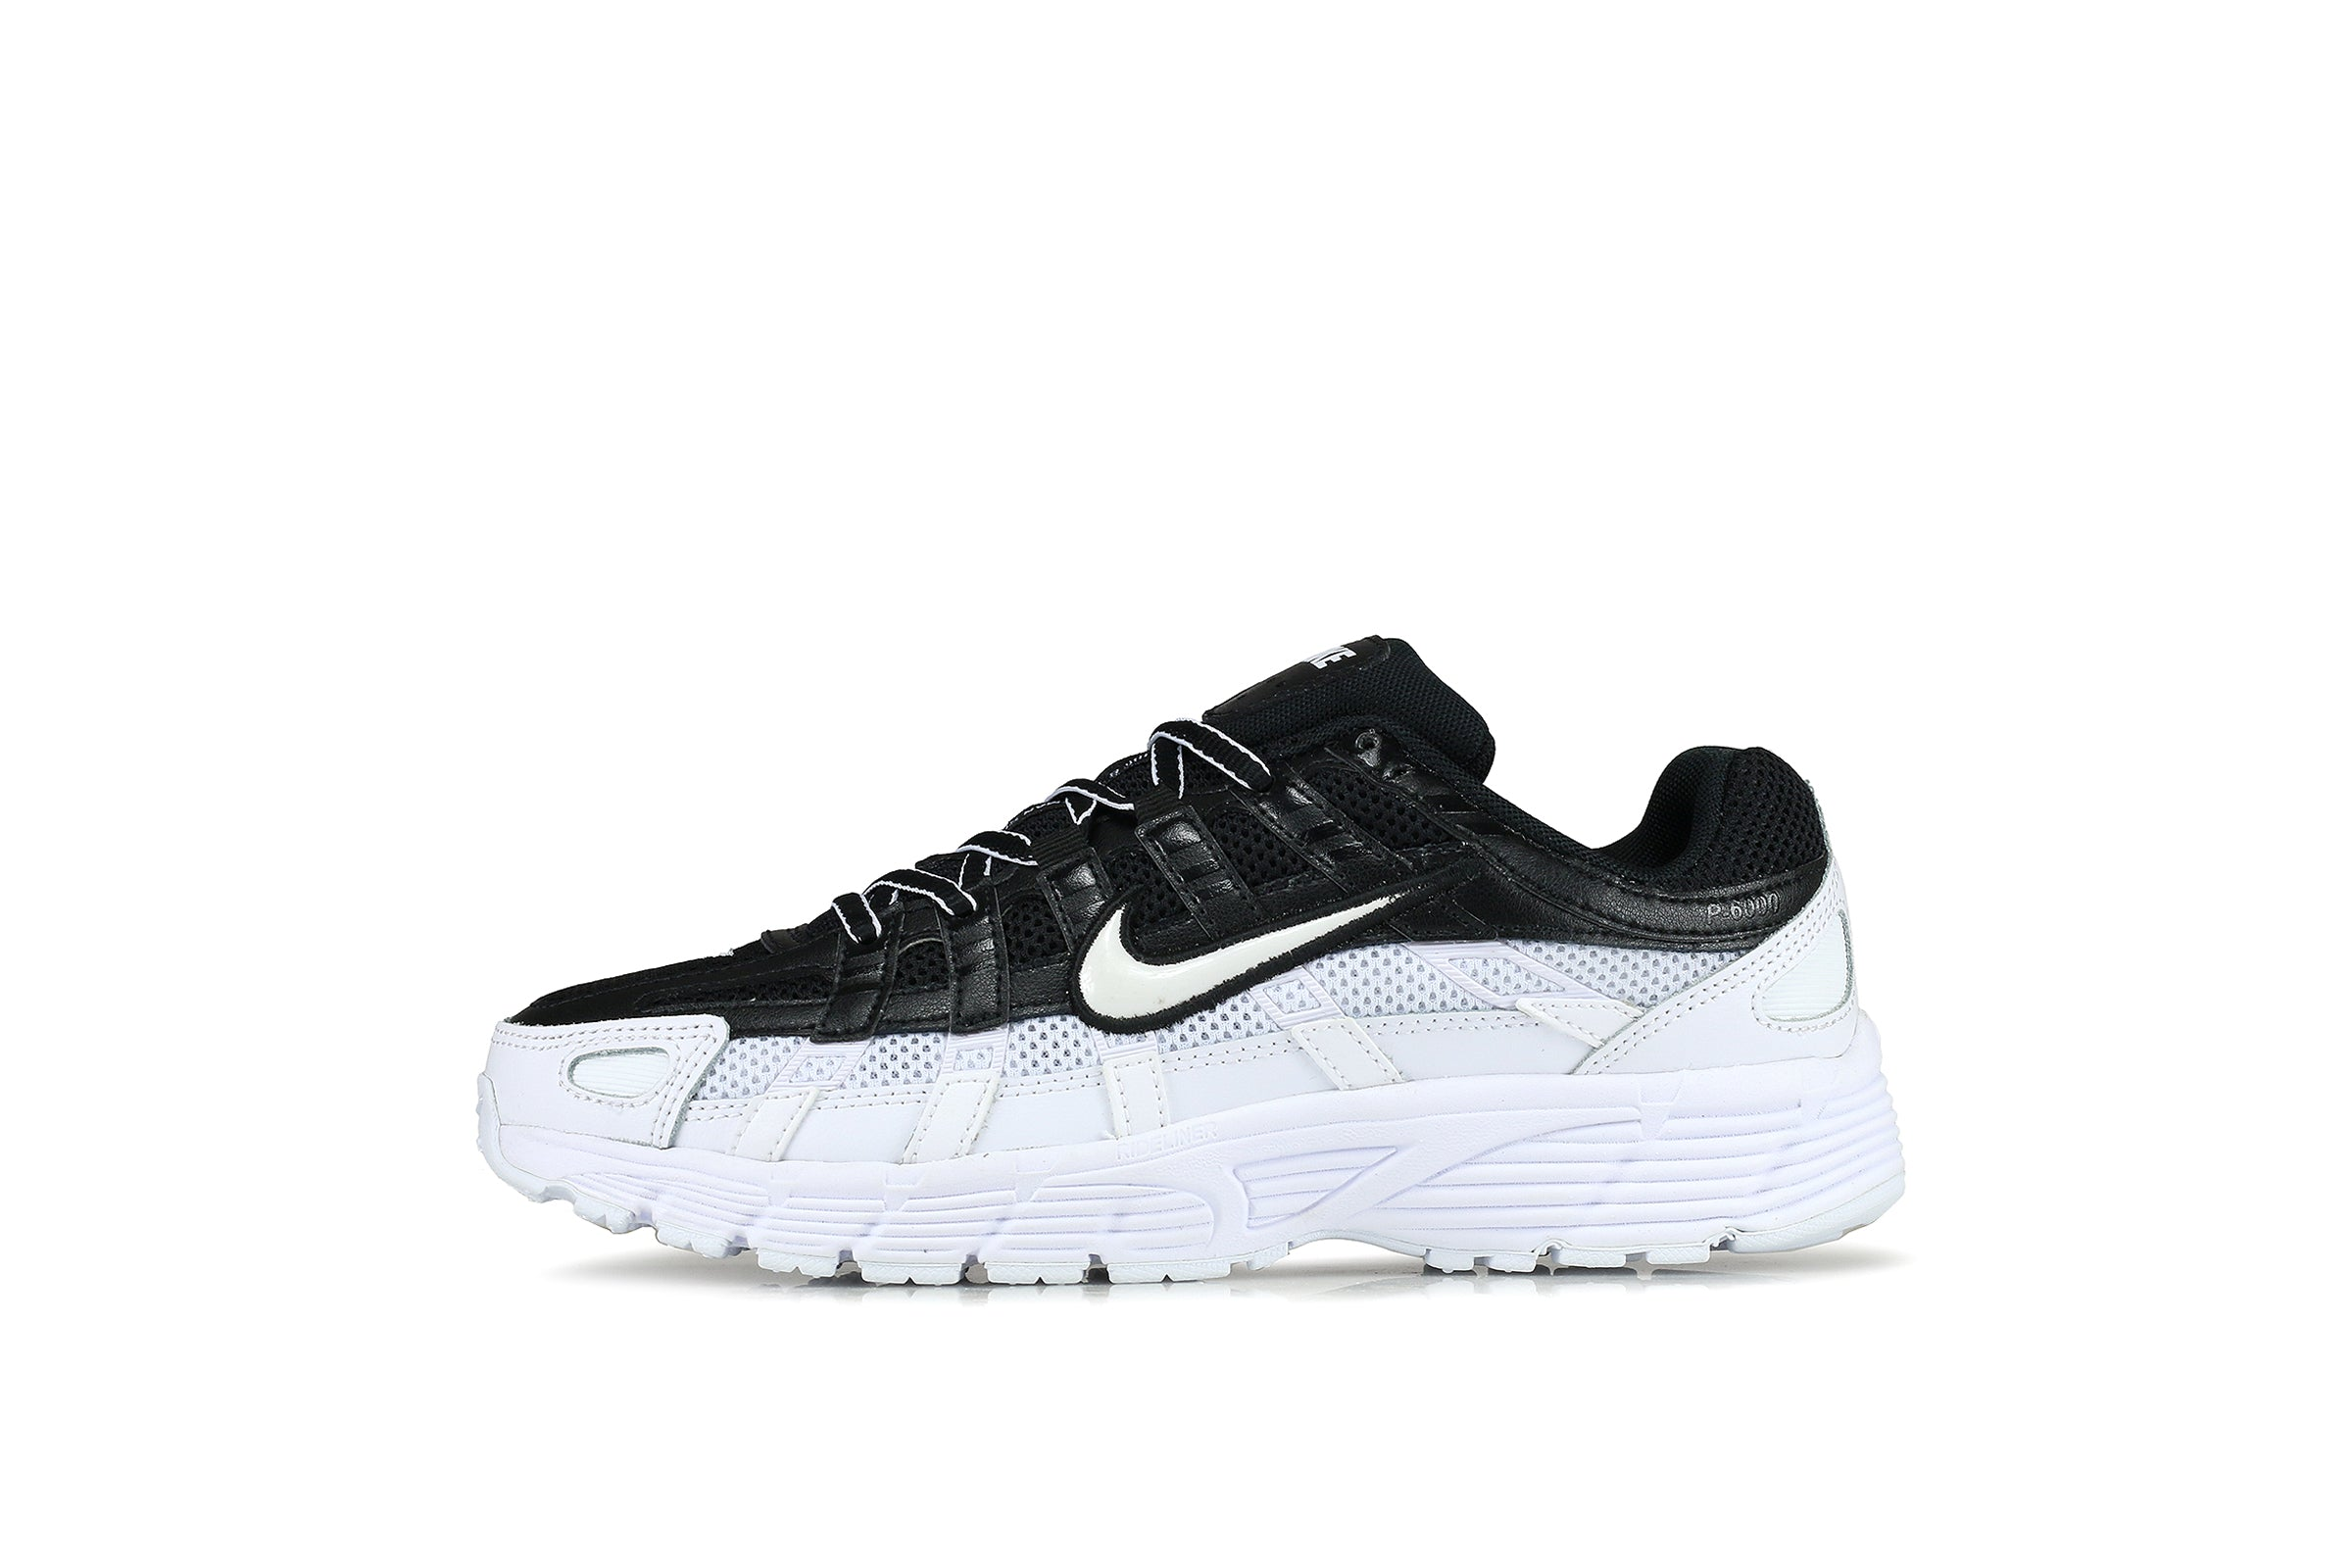 53b53ed0cd82 Nike Womens P-6000 Concept